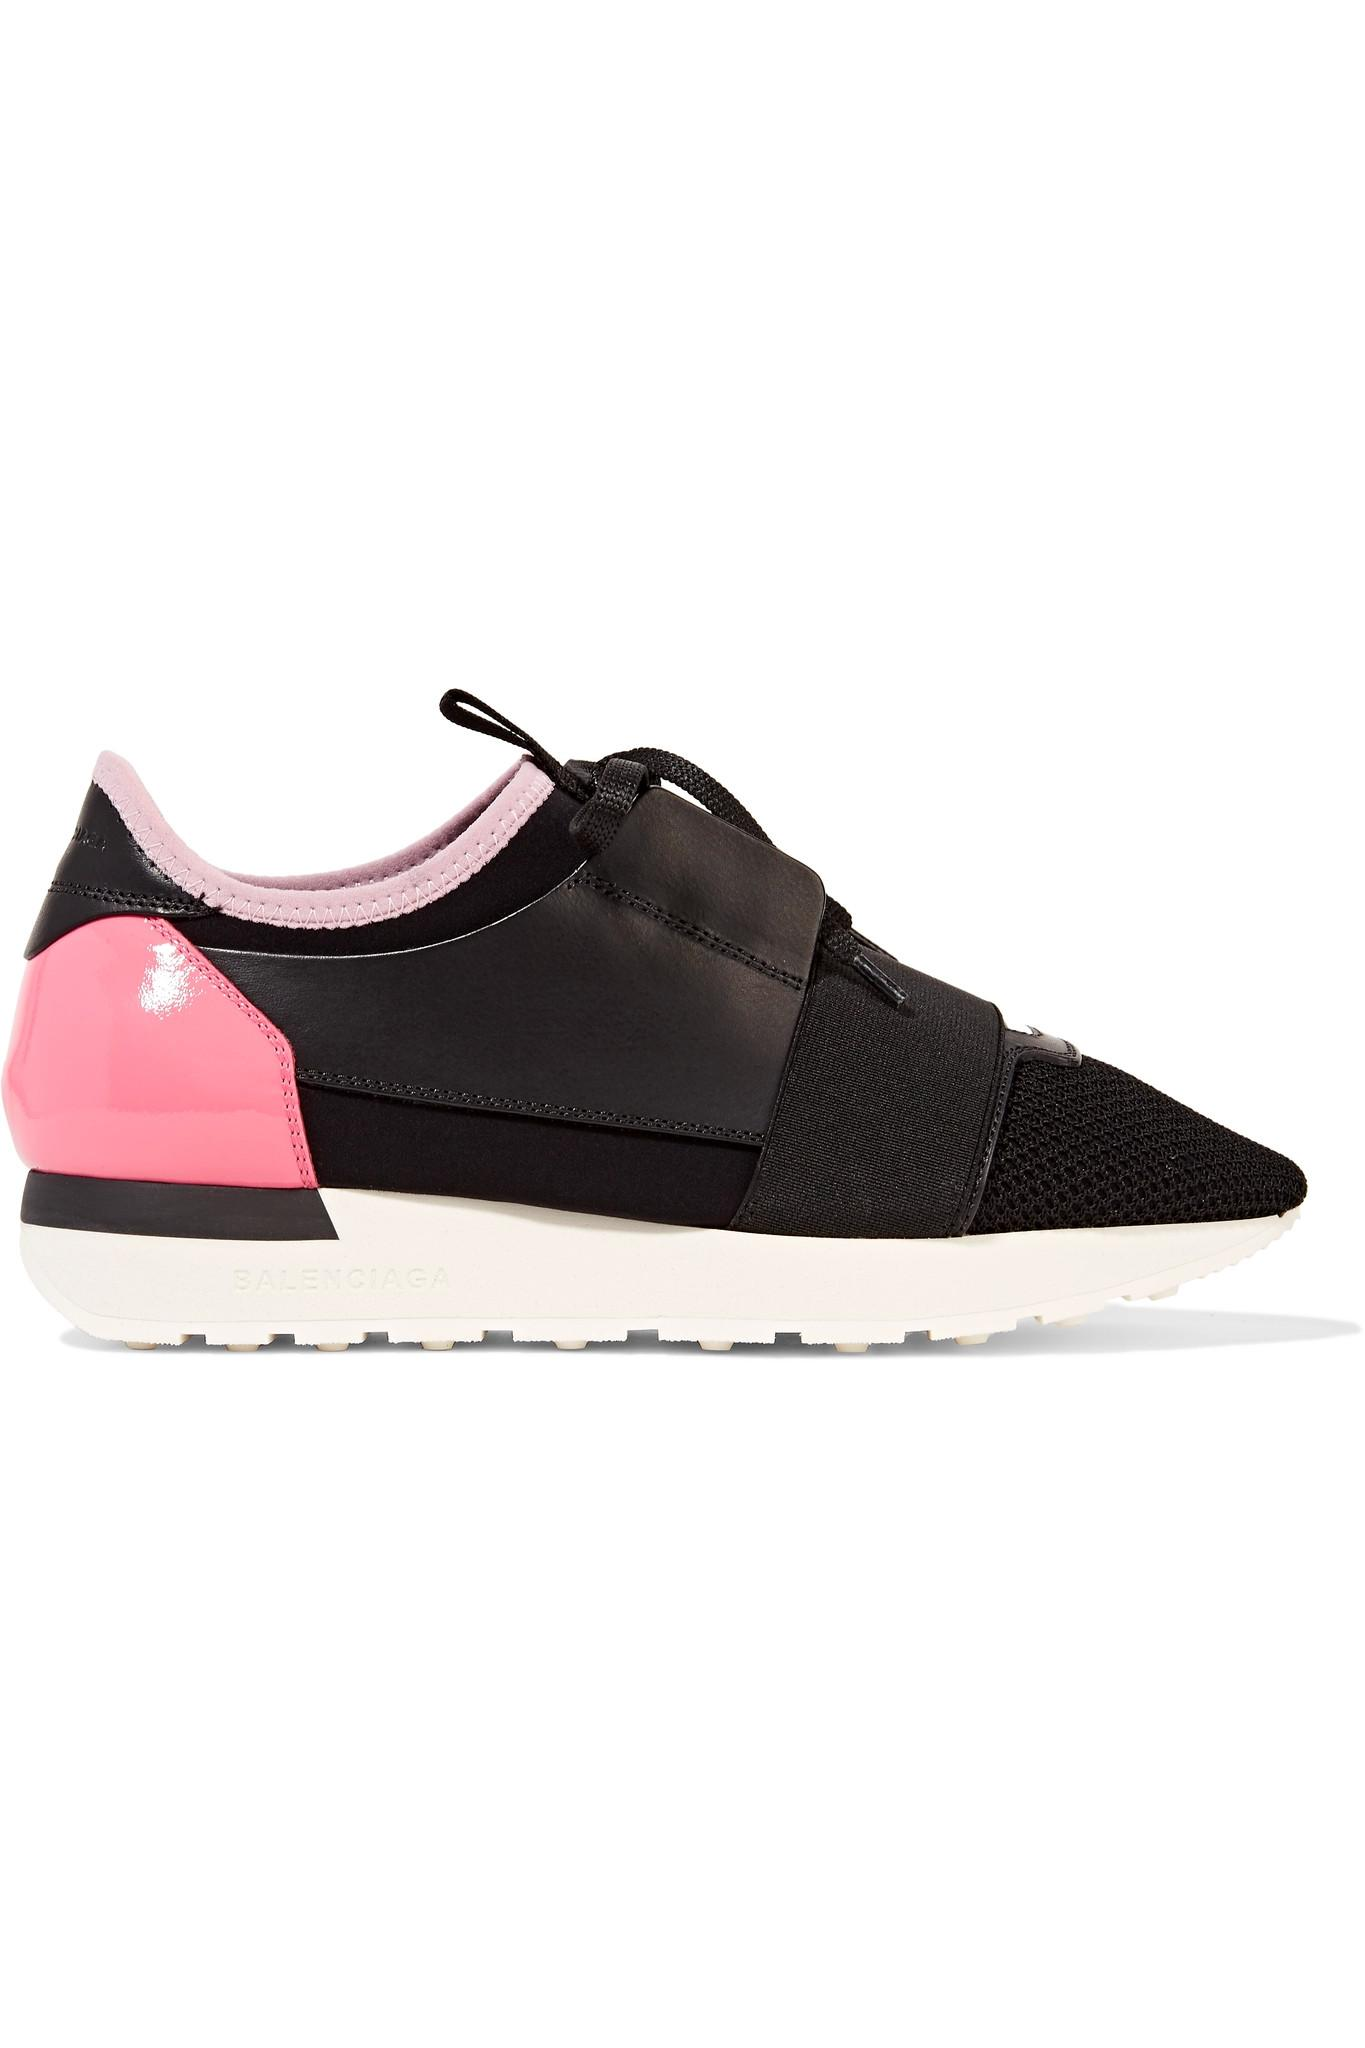 Balenciaga race runner leather mesh and neoprene sneakers in black